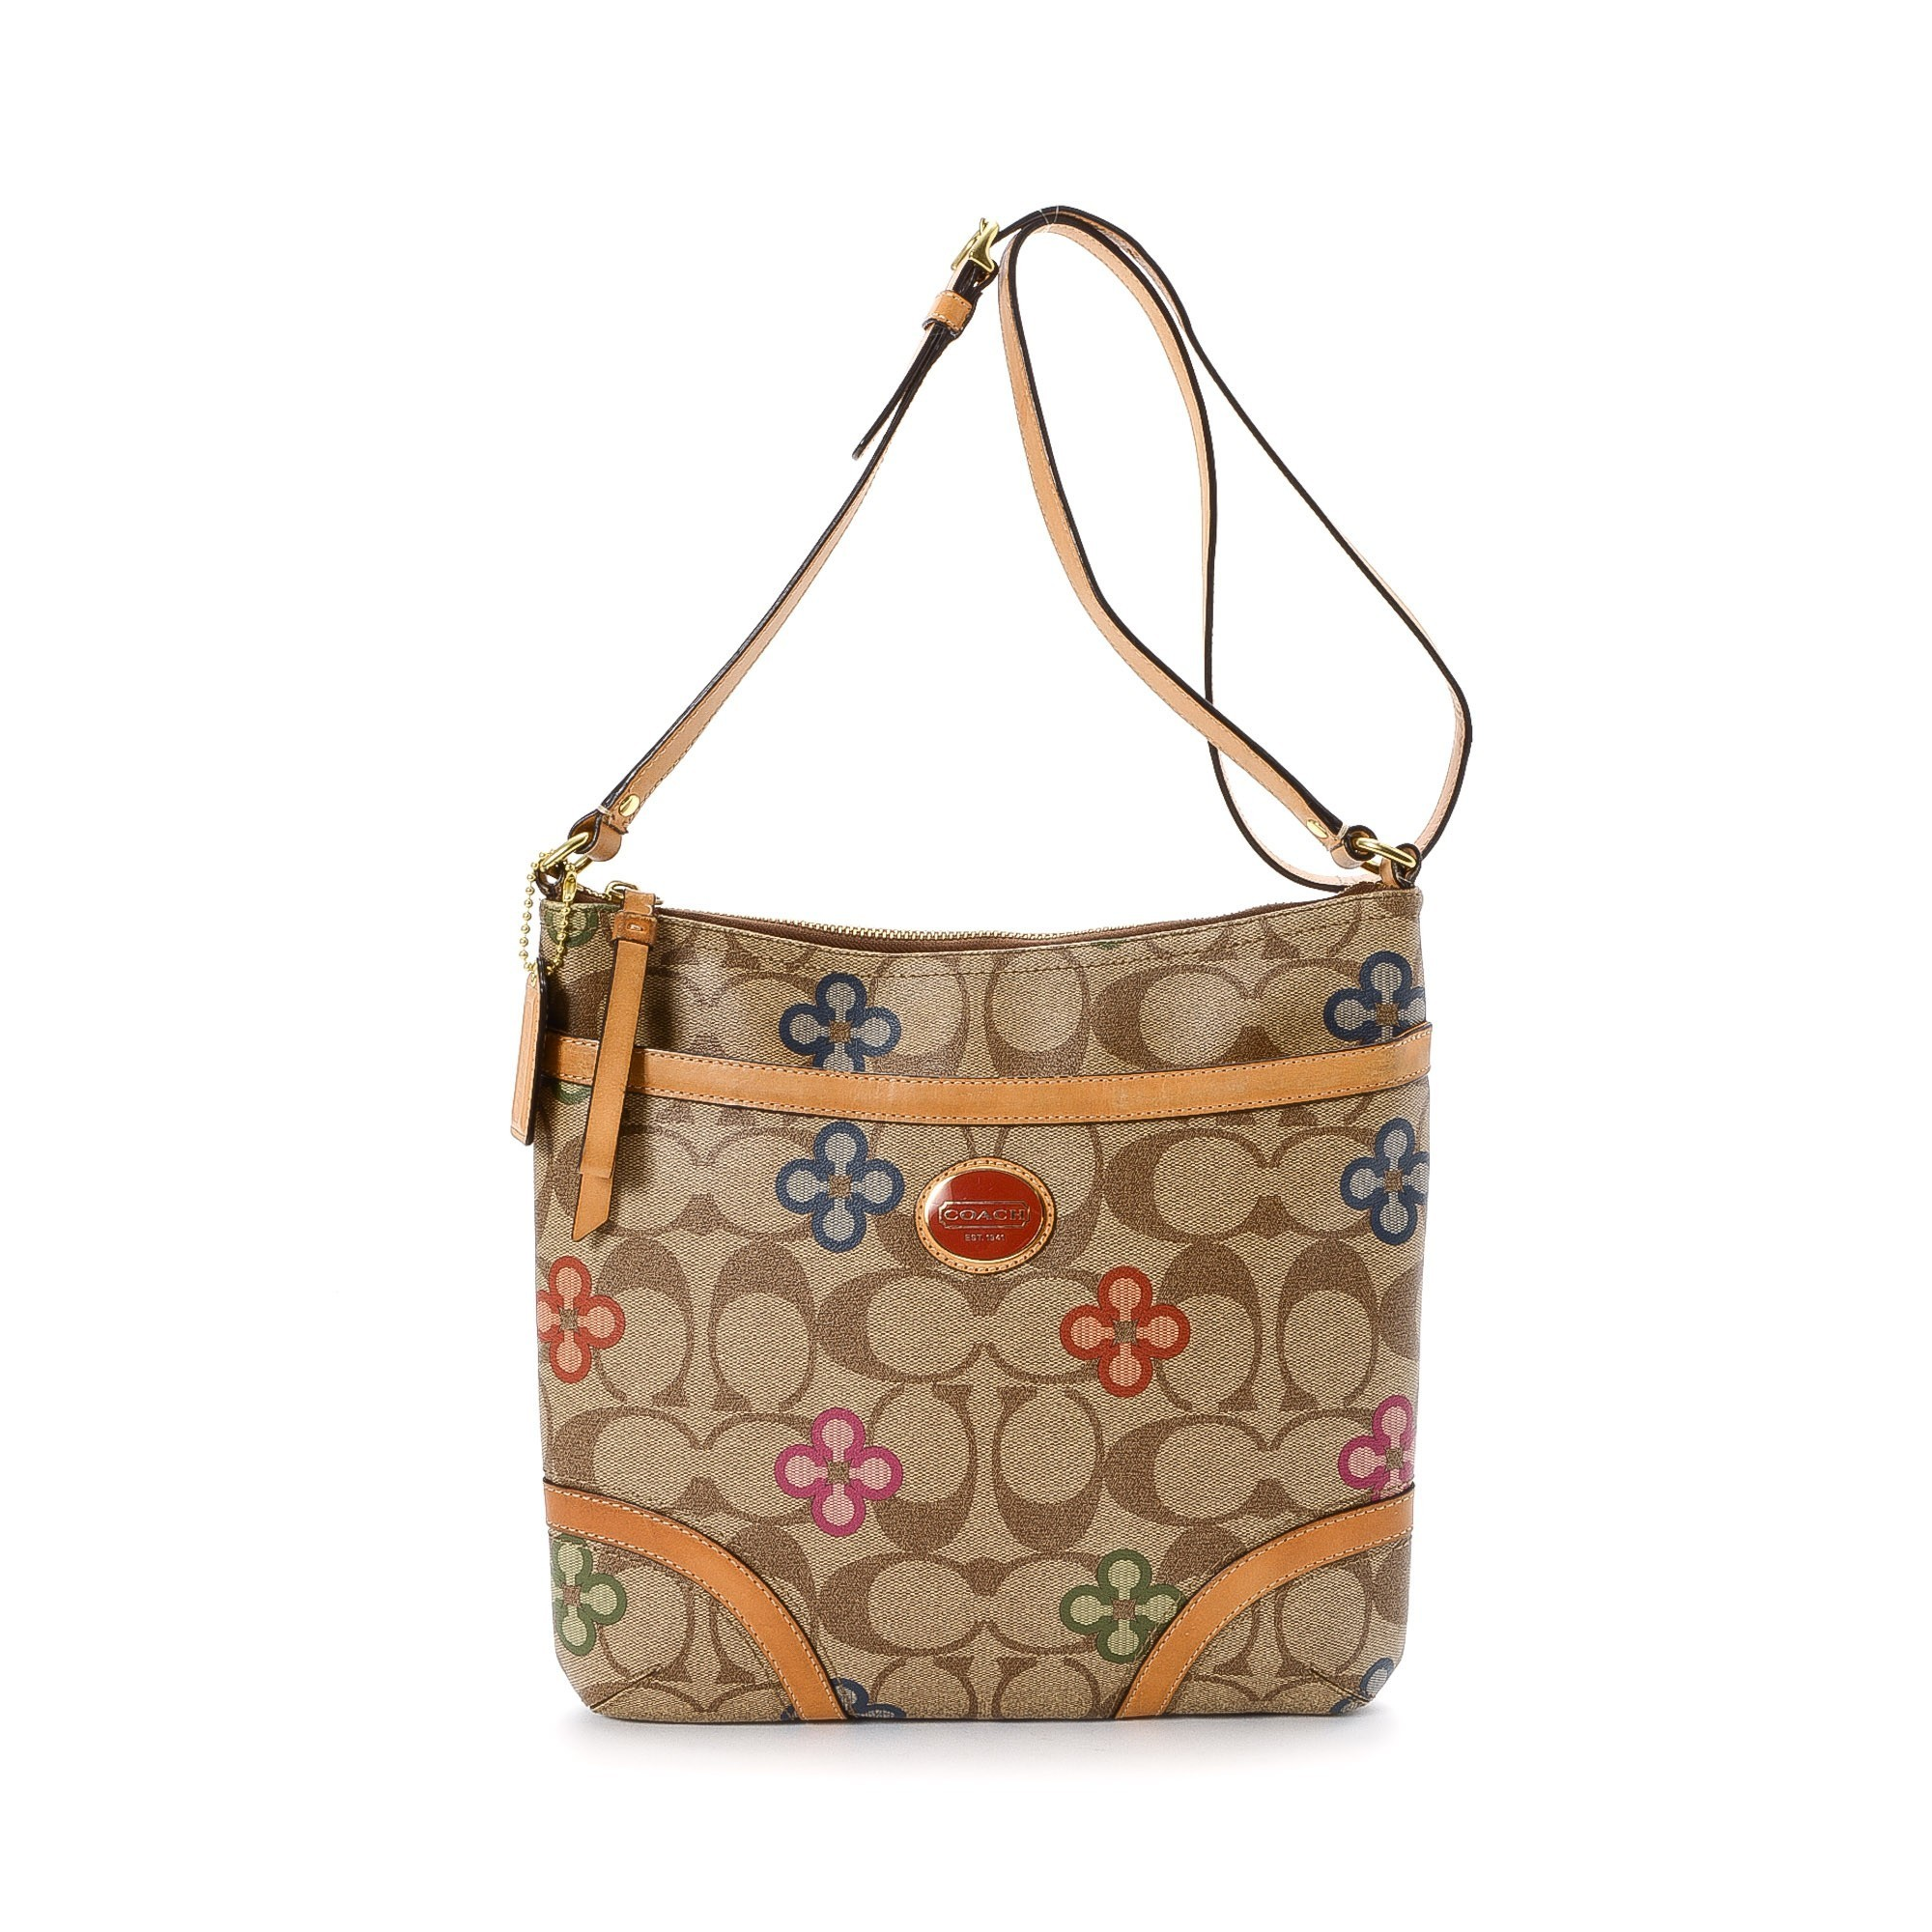 Buy Beige Coated Canvas Coach Messenger U0026 Crossbody Bag At LXRu0026CO